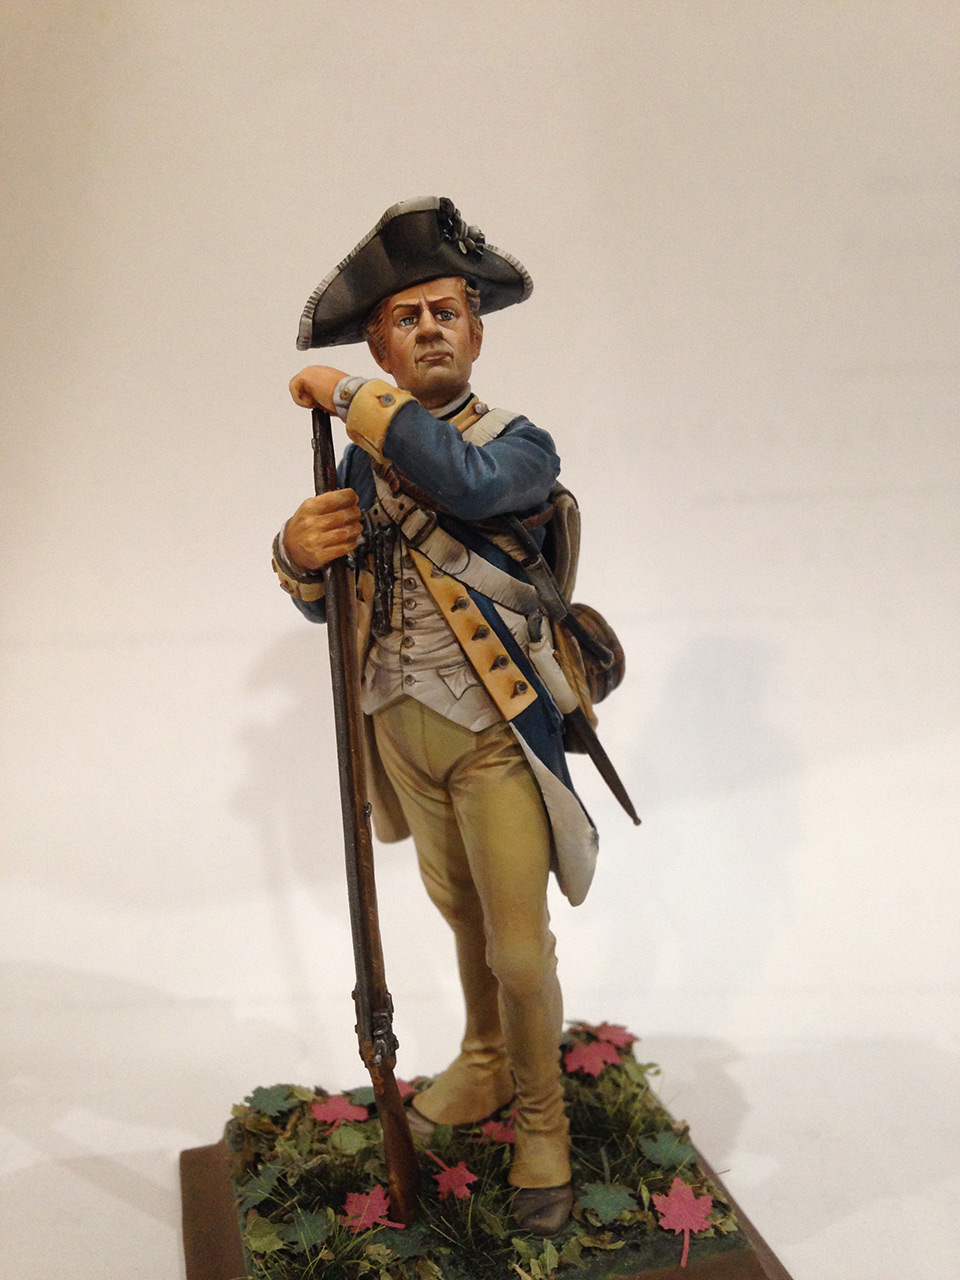 Figures: Private, 1st New York regt. of Continental Army, photo #9